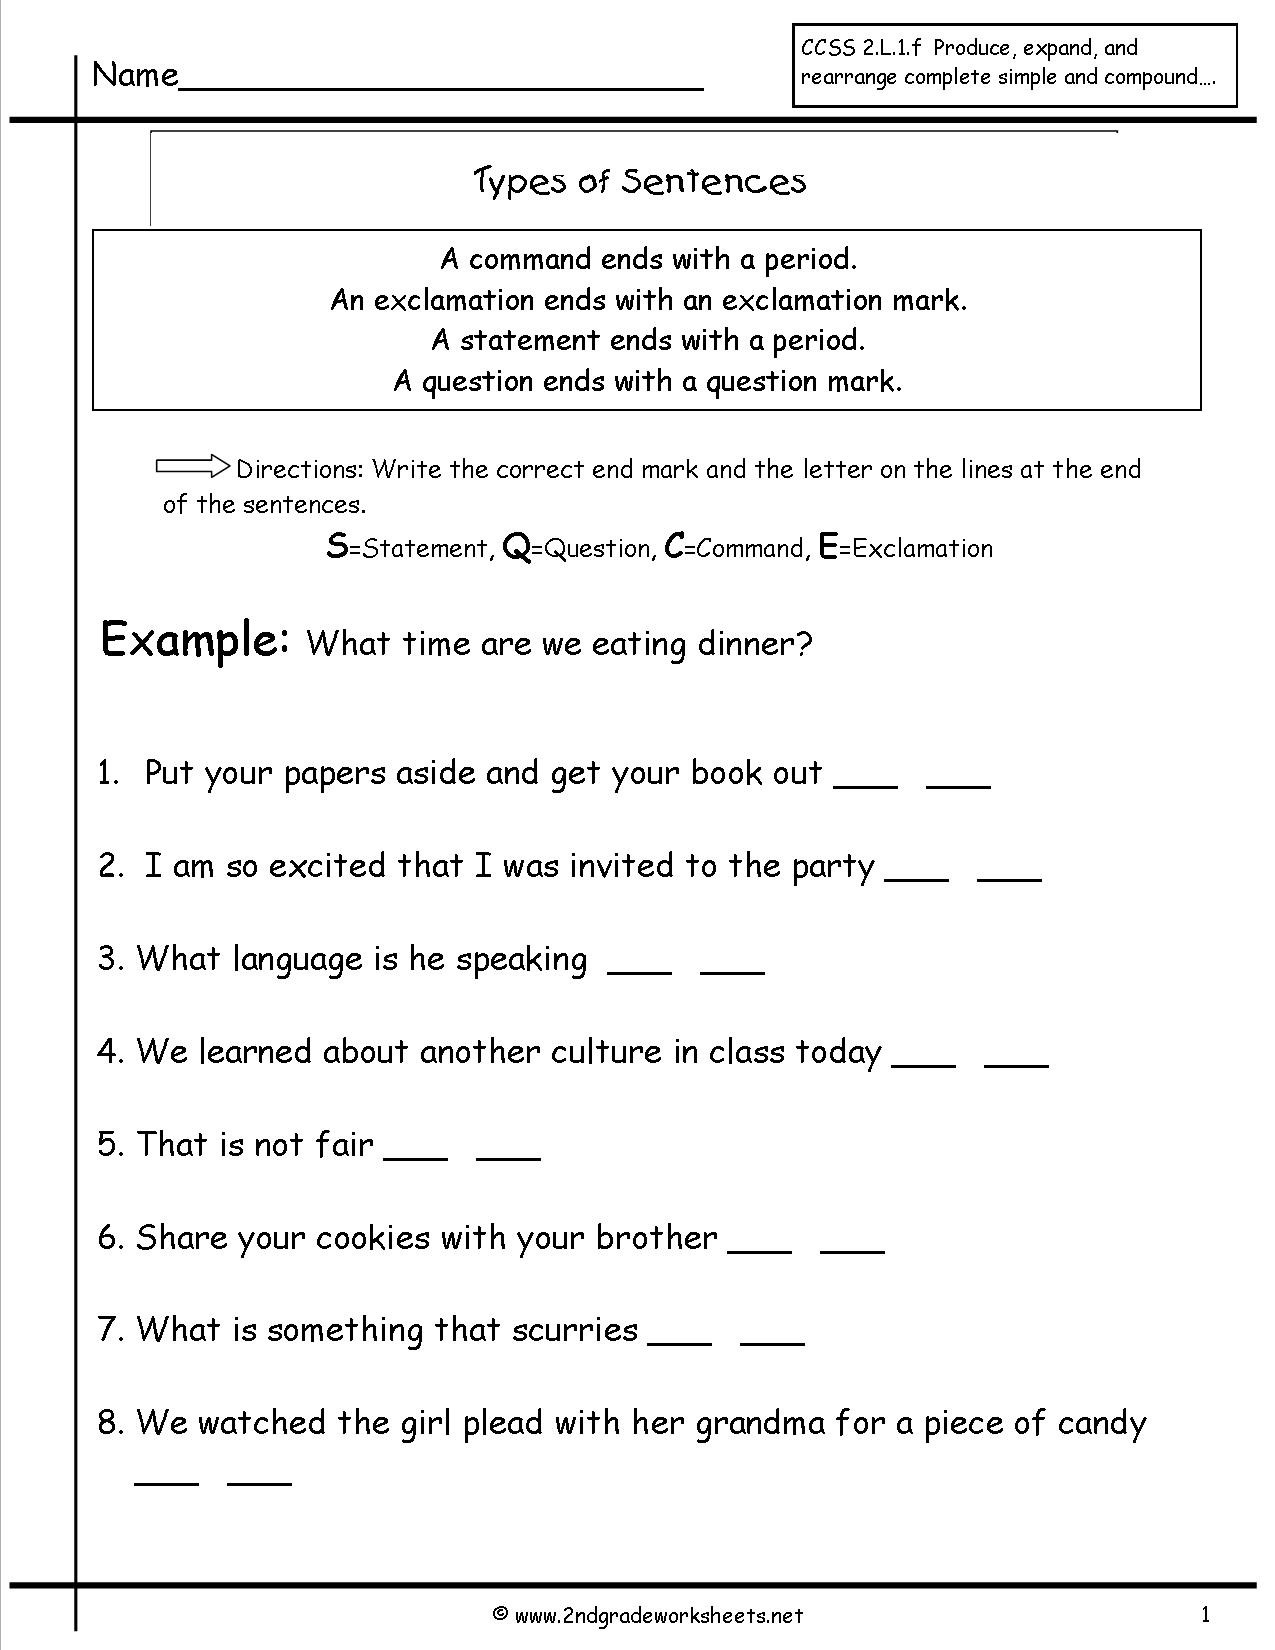 Topic Sentence Worksheets 2nd Grade Second Grade Sentences Worksheets Ccss 4th Sentence